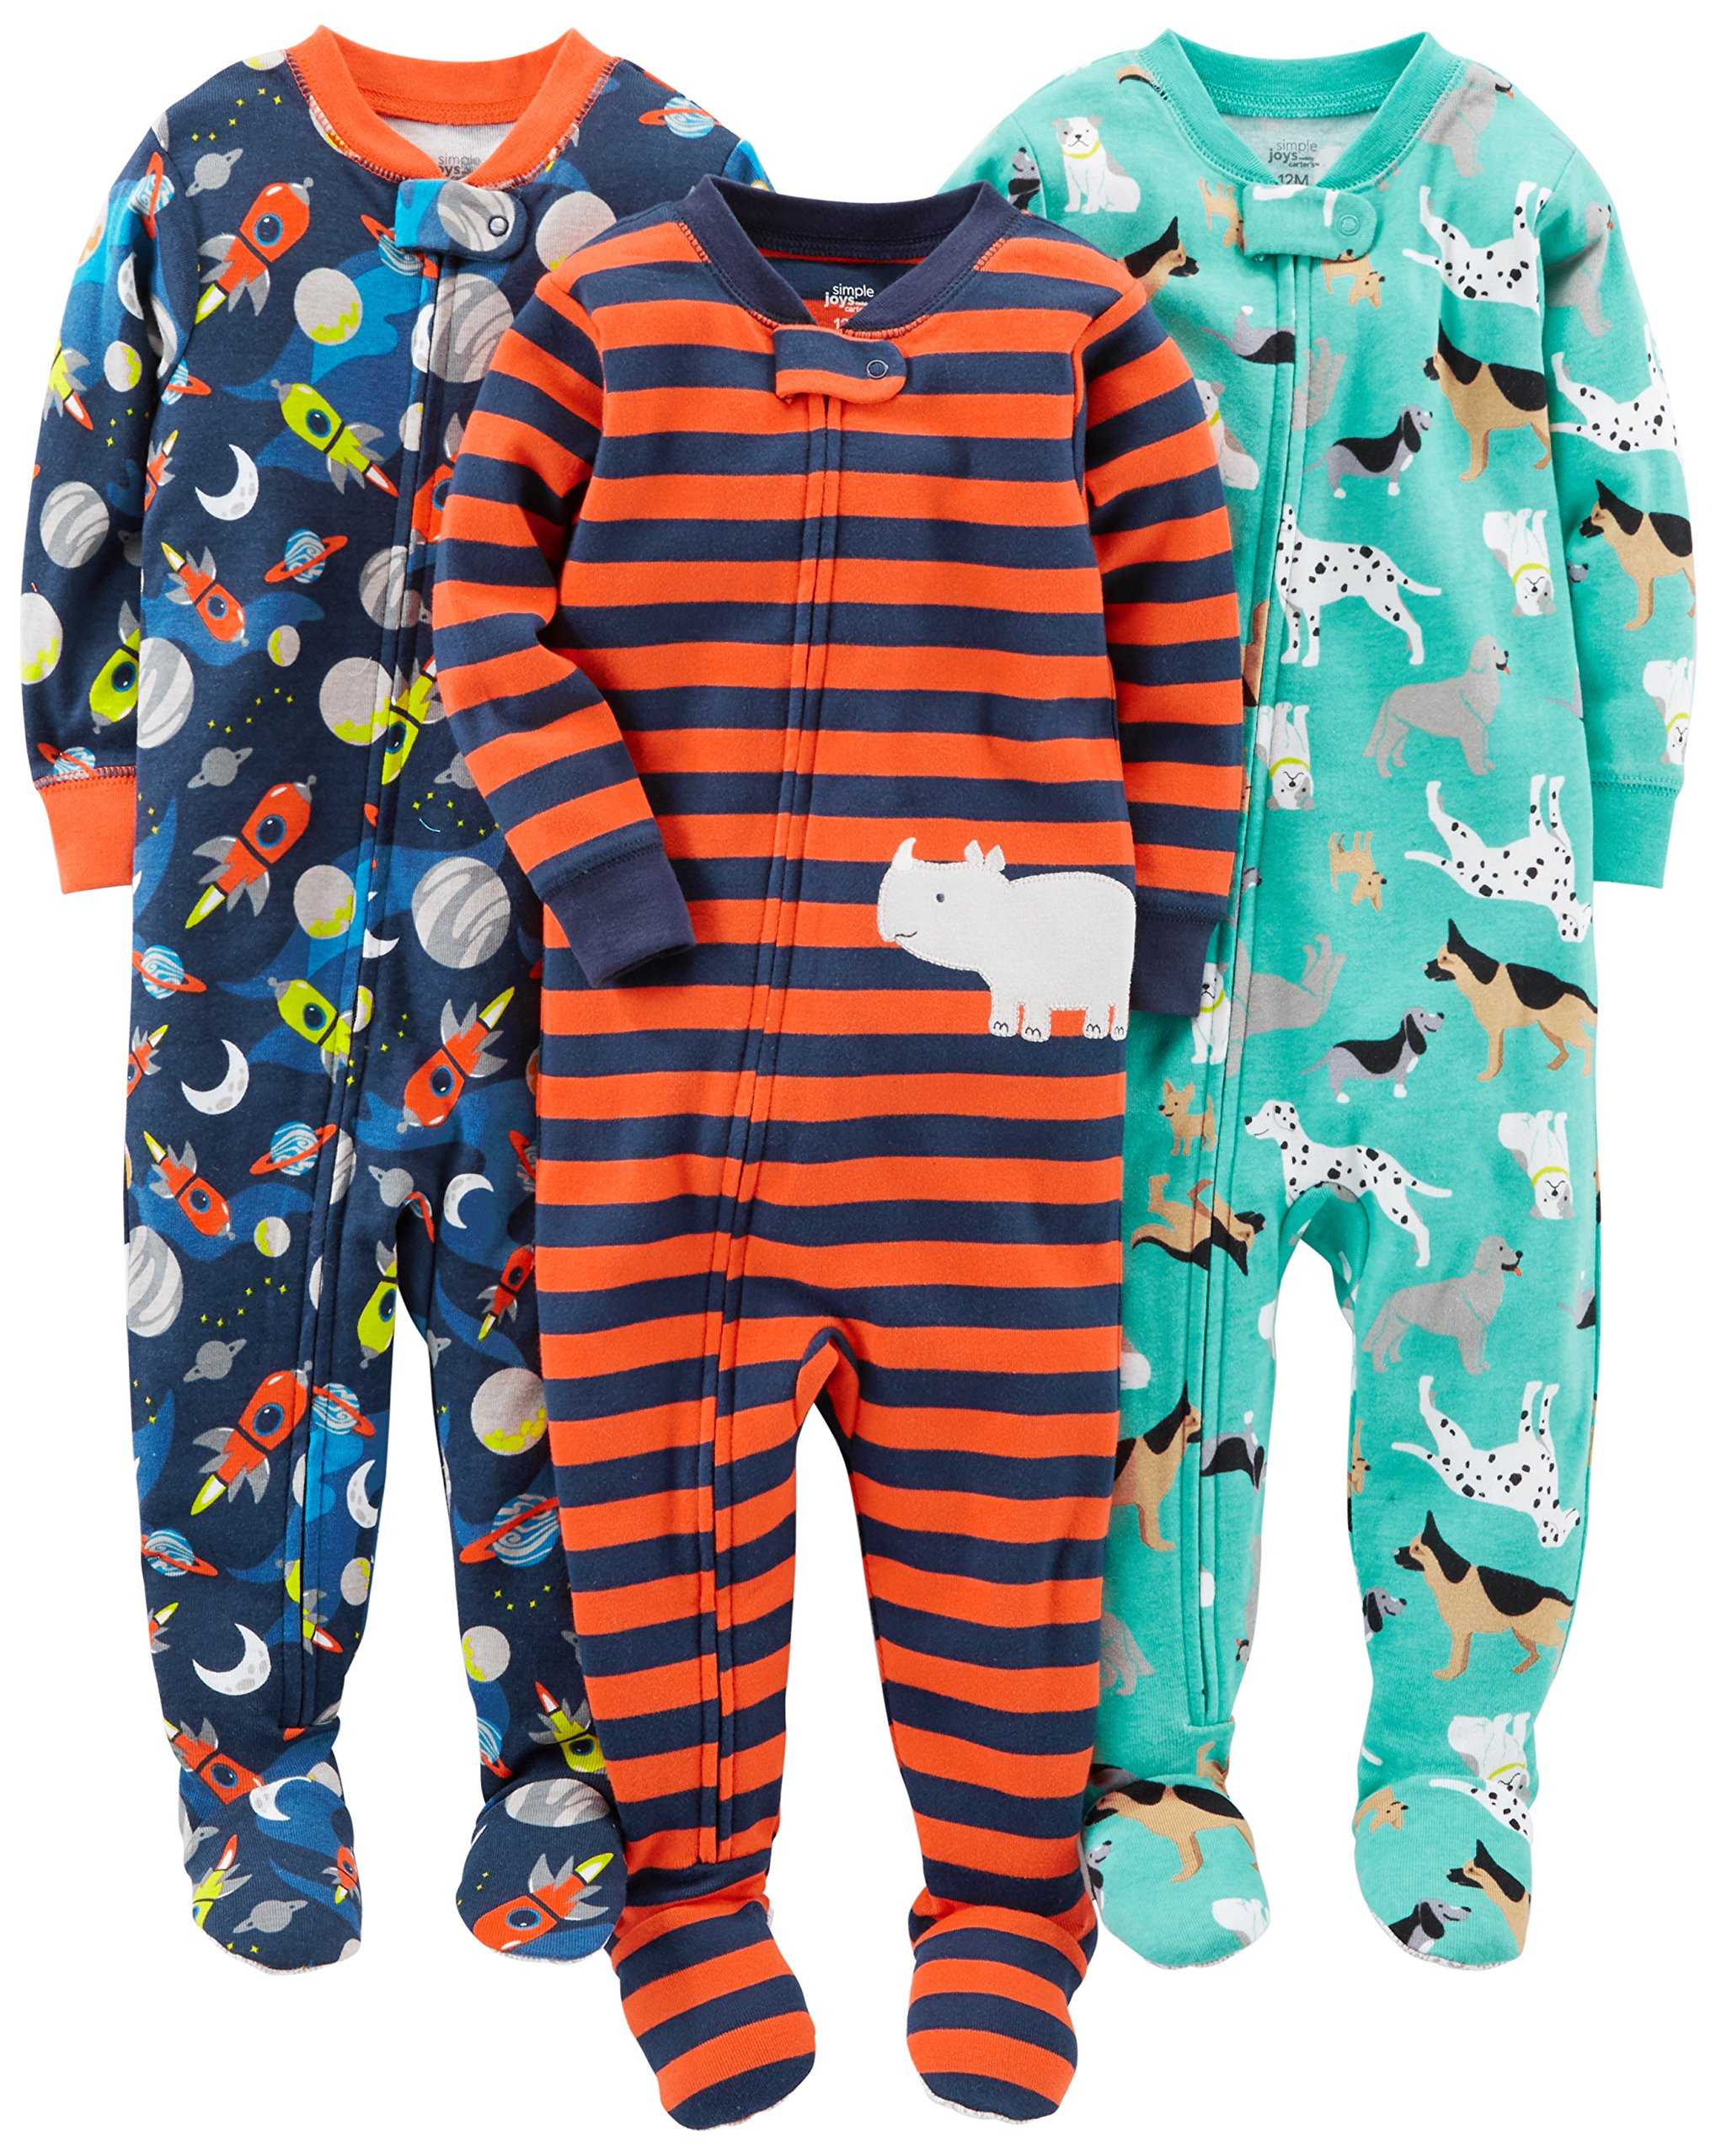 Simple Joys by Carter's Baby Boys' 3-Pack Snug-Fit Footed Cotton Pajamas, Dogs/Space/Rhino, 4T